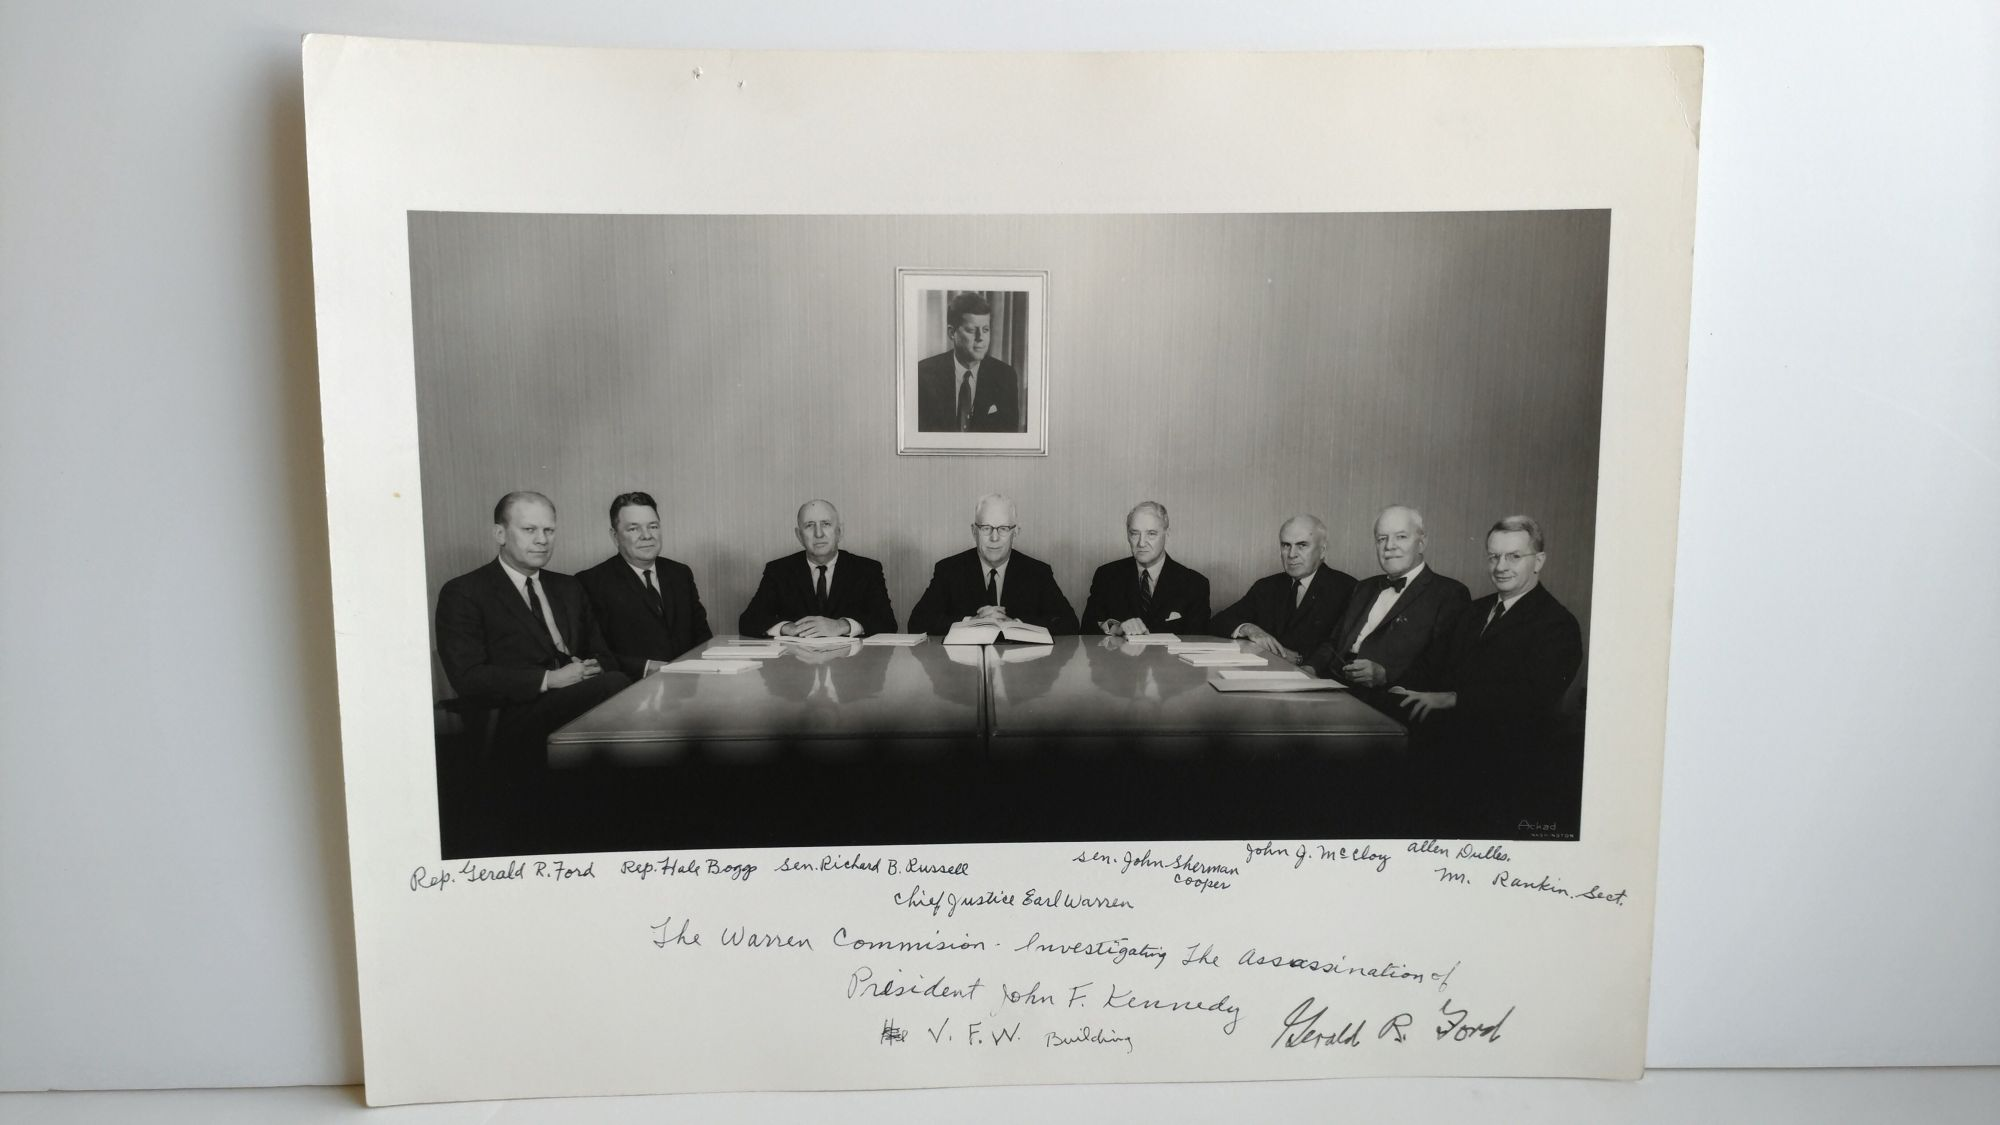 PHOTOGRAPH OF THE WARREN COMMISSION SIGNED BY GERALD FORD. Abdon Daoud Ackad.